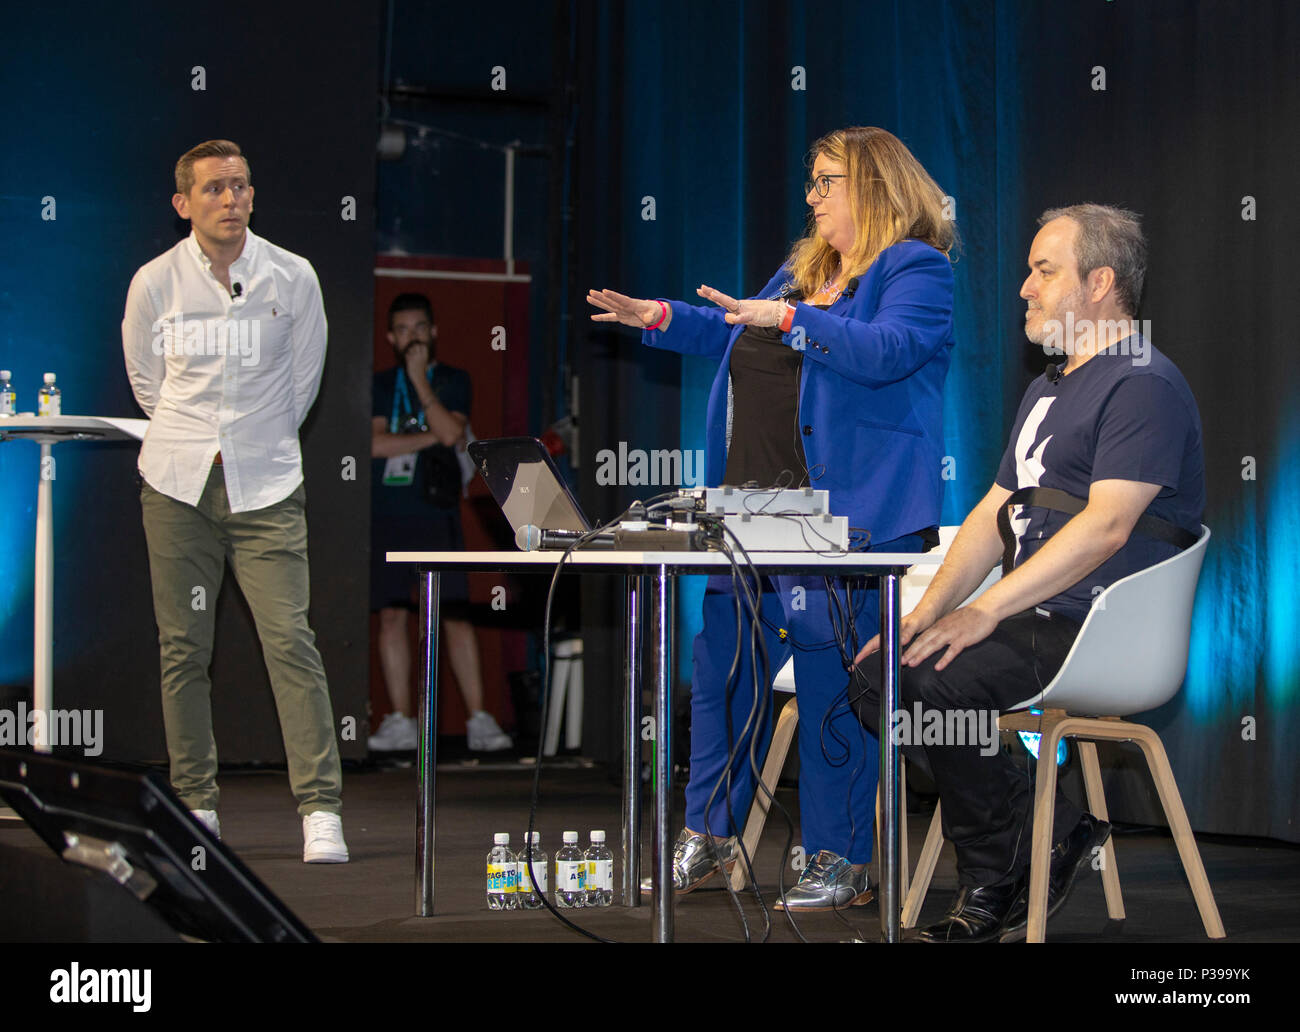 Cannes, France, 18. June 2018, from right David Arnold - The Brain, Multi-award-winning British film and television composer, Sophie Scott The Professor and Ollie Deane - The Suit attend the Cannes Lions - International Festival of Creativity. Credit: Ifnm Press/Alamy Live News - Stock Image